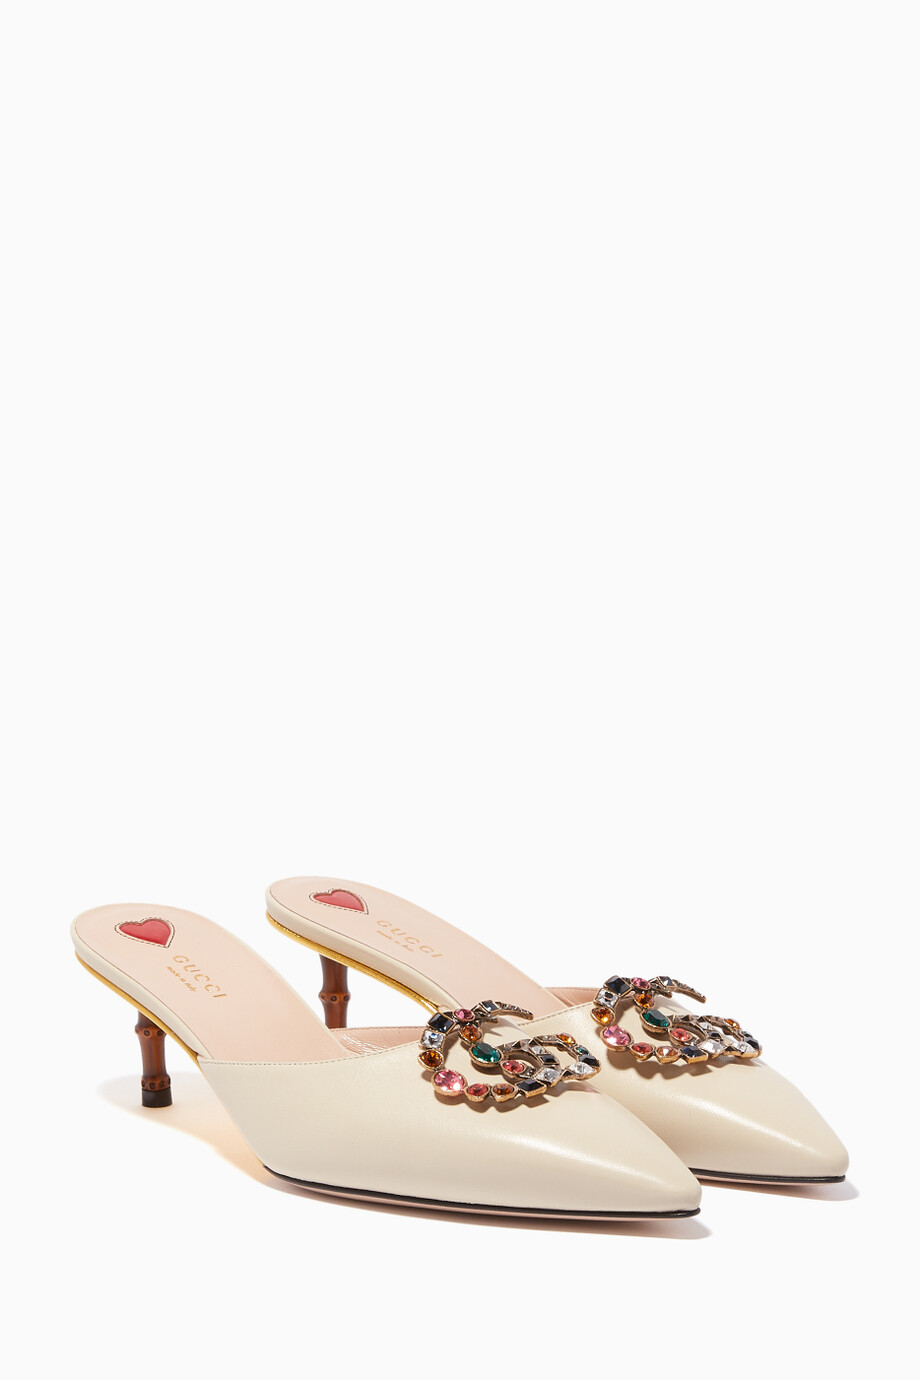 0887a99194de9 Shop Gucci White White Unia GG Crystal Embellished Mules for Women ...